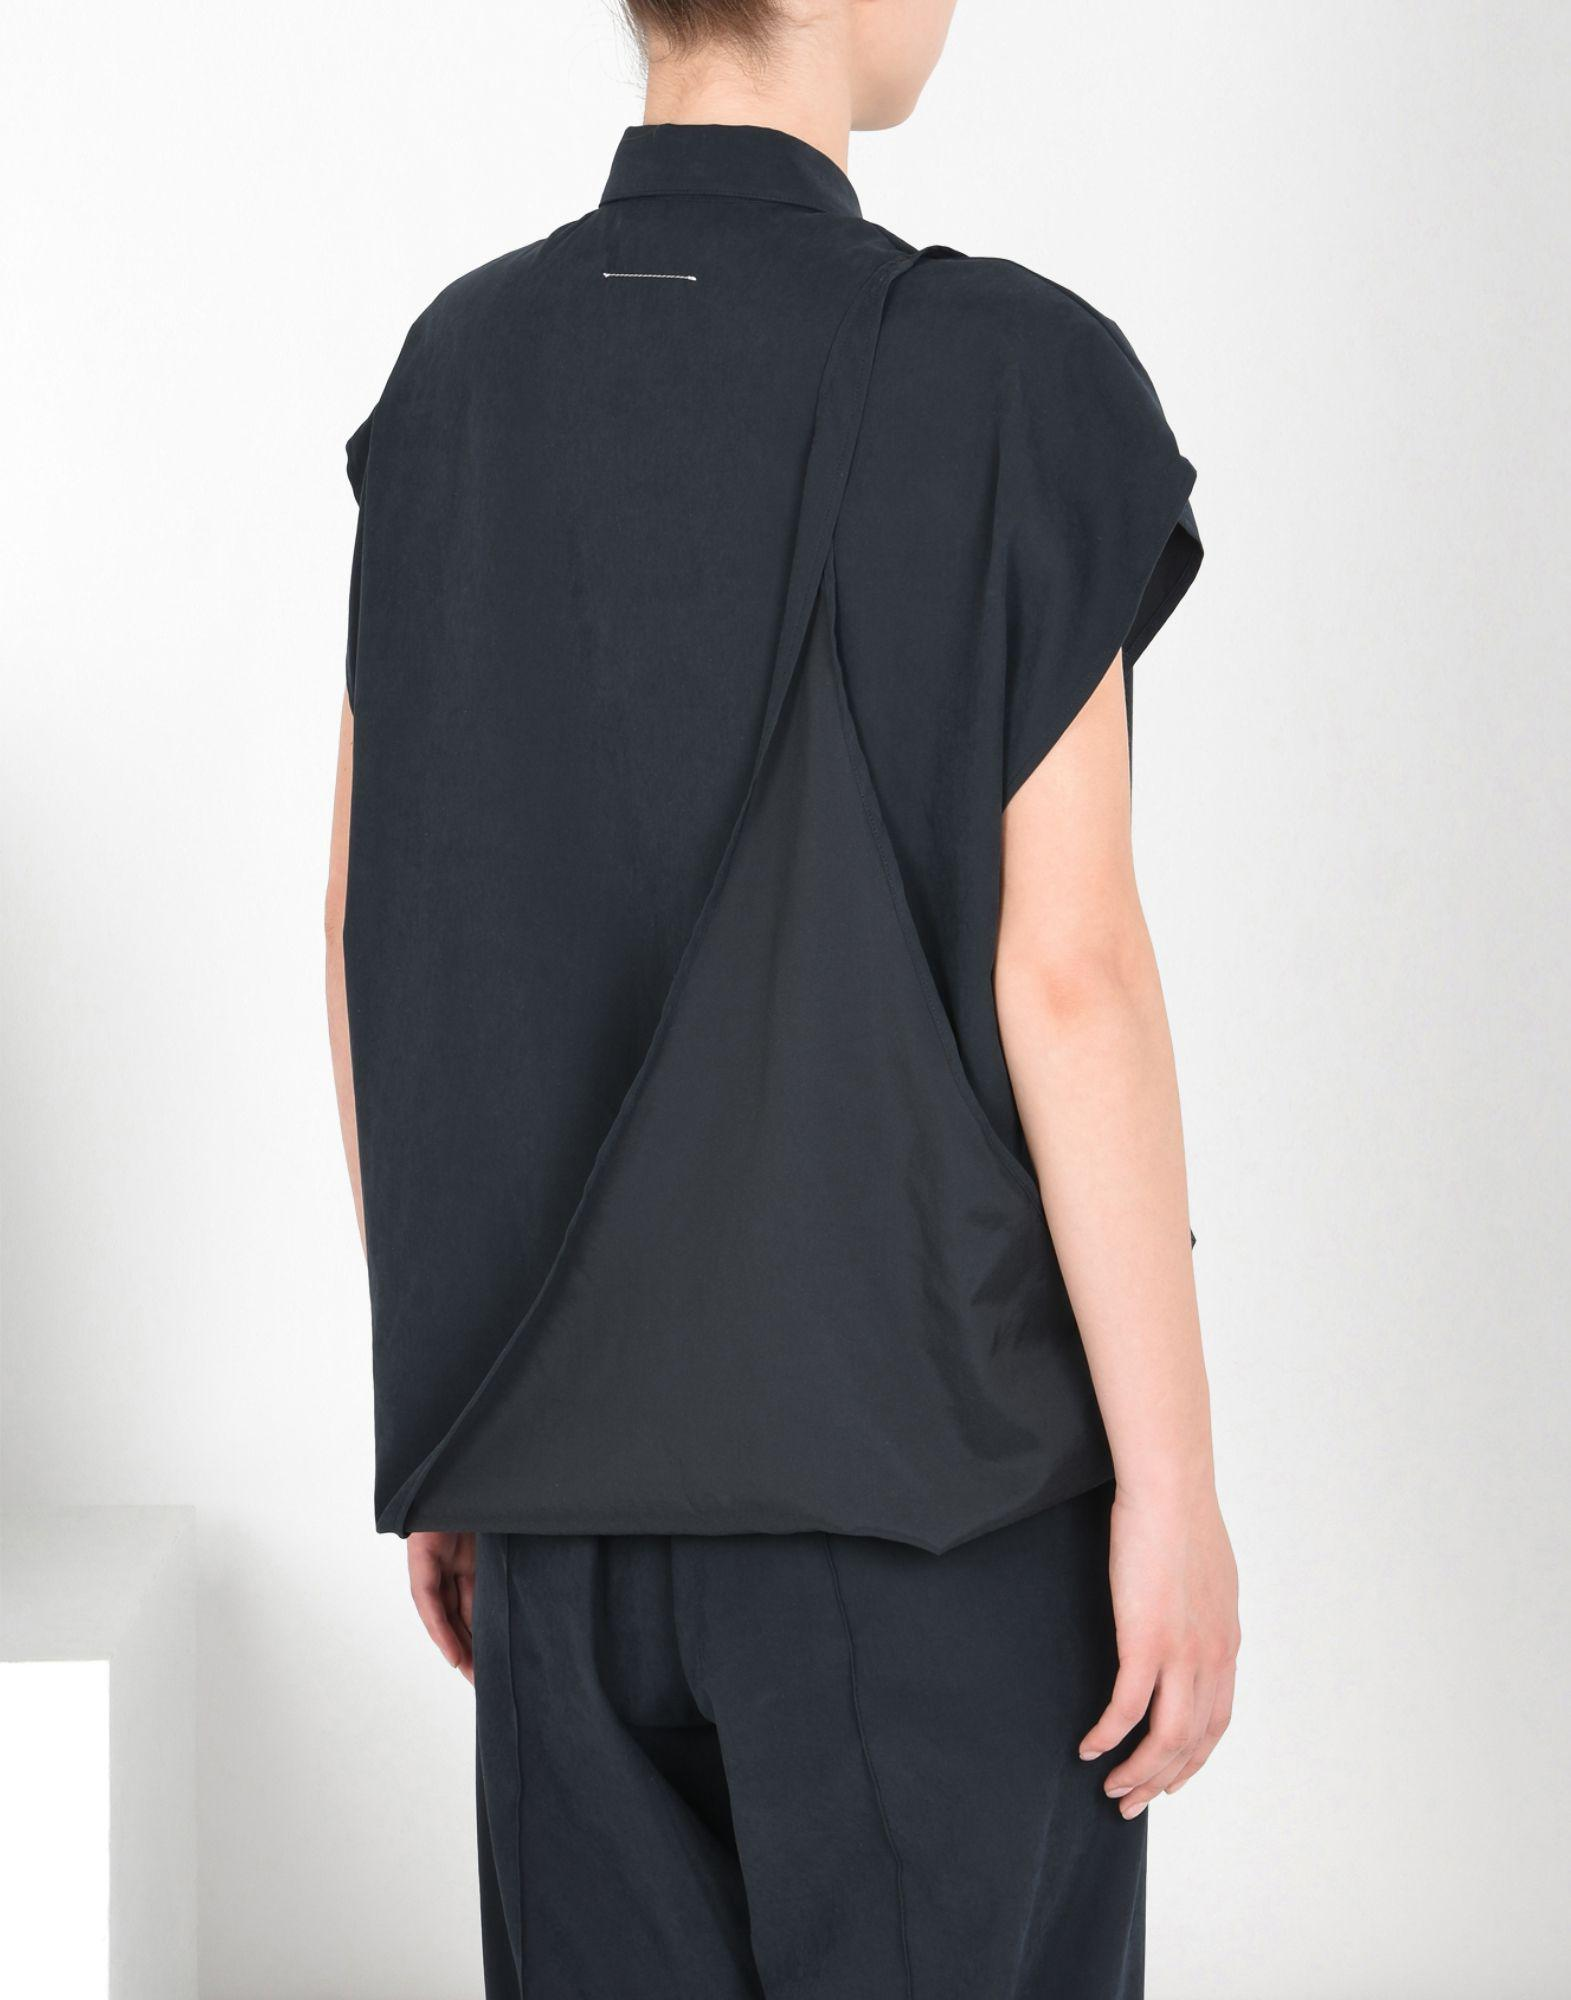 Free Shipping Outlet Store Free Shipping Prices Black Asymmetric Microfiber Shirt Maison Martin Margiela High Quality X2jkrH